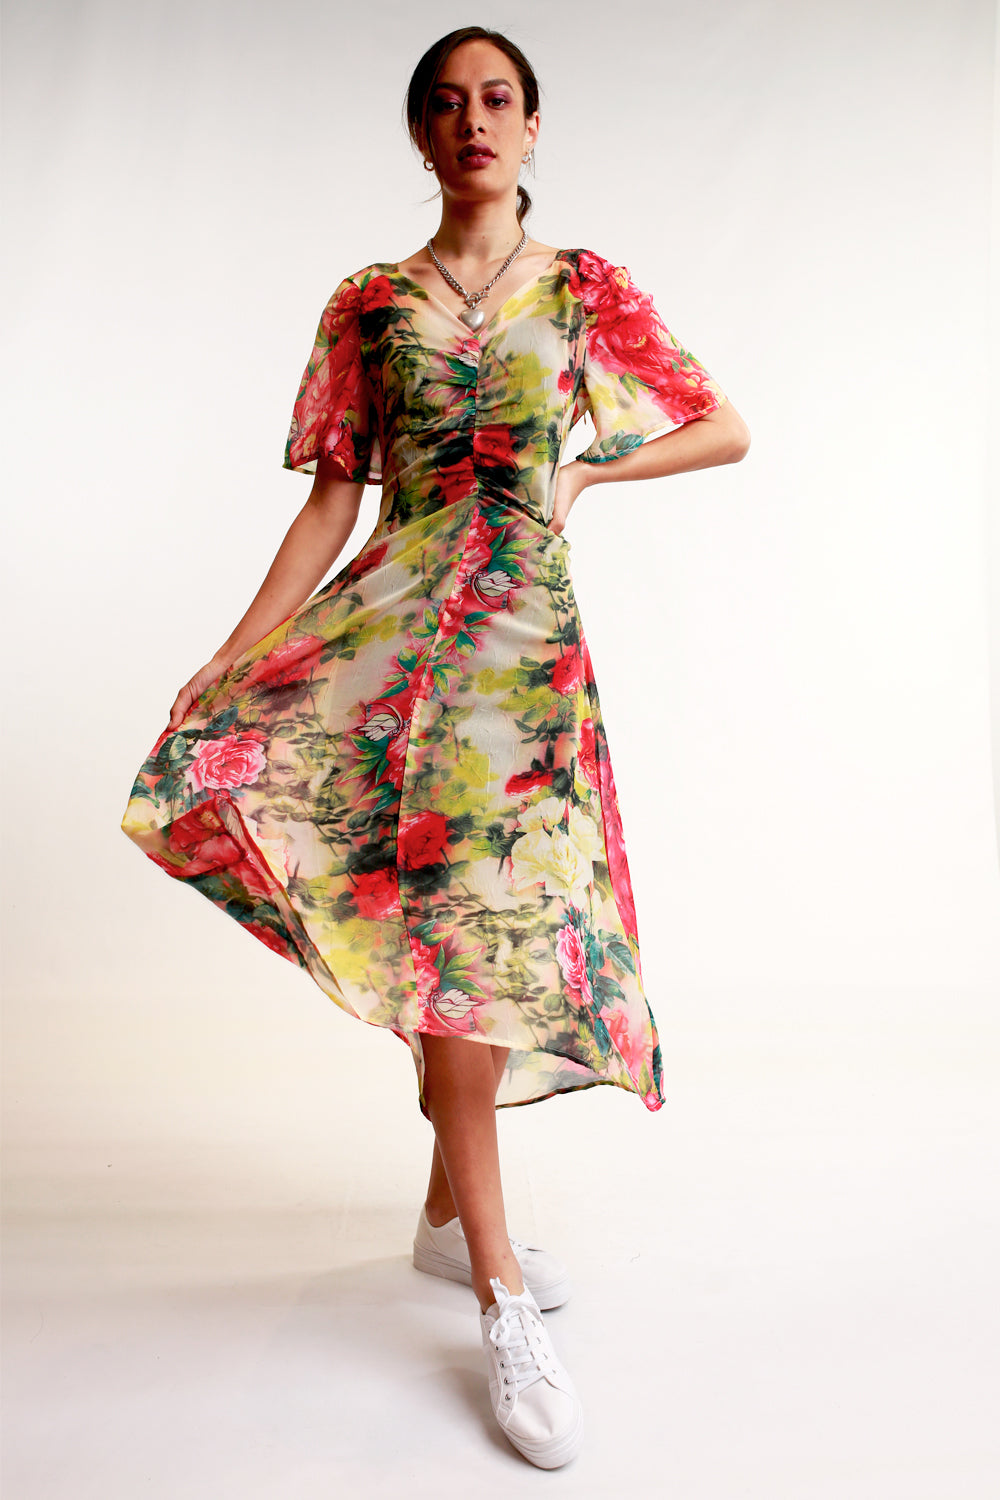 Closest Floral Dress - SALE